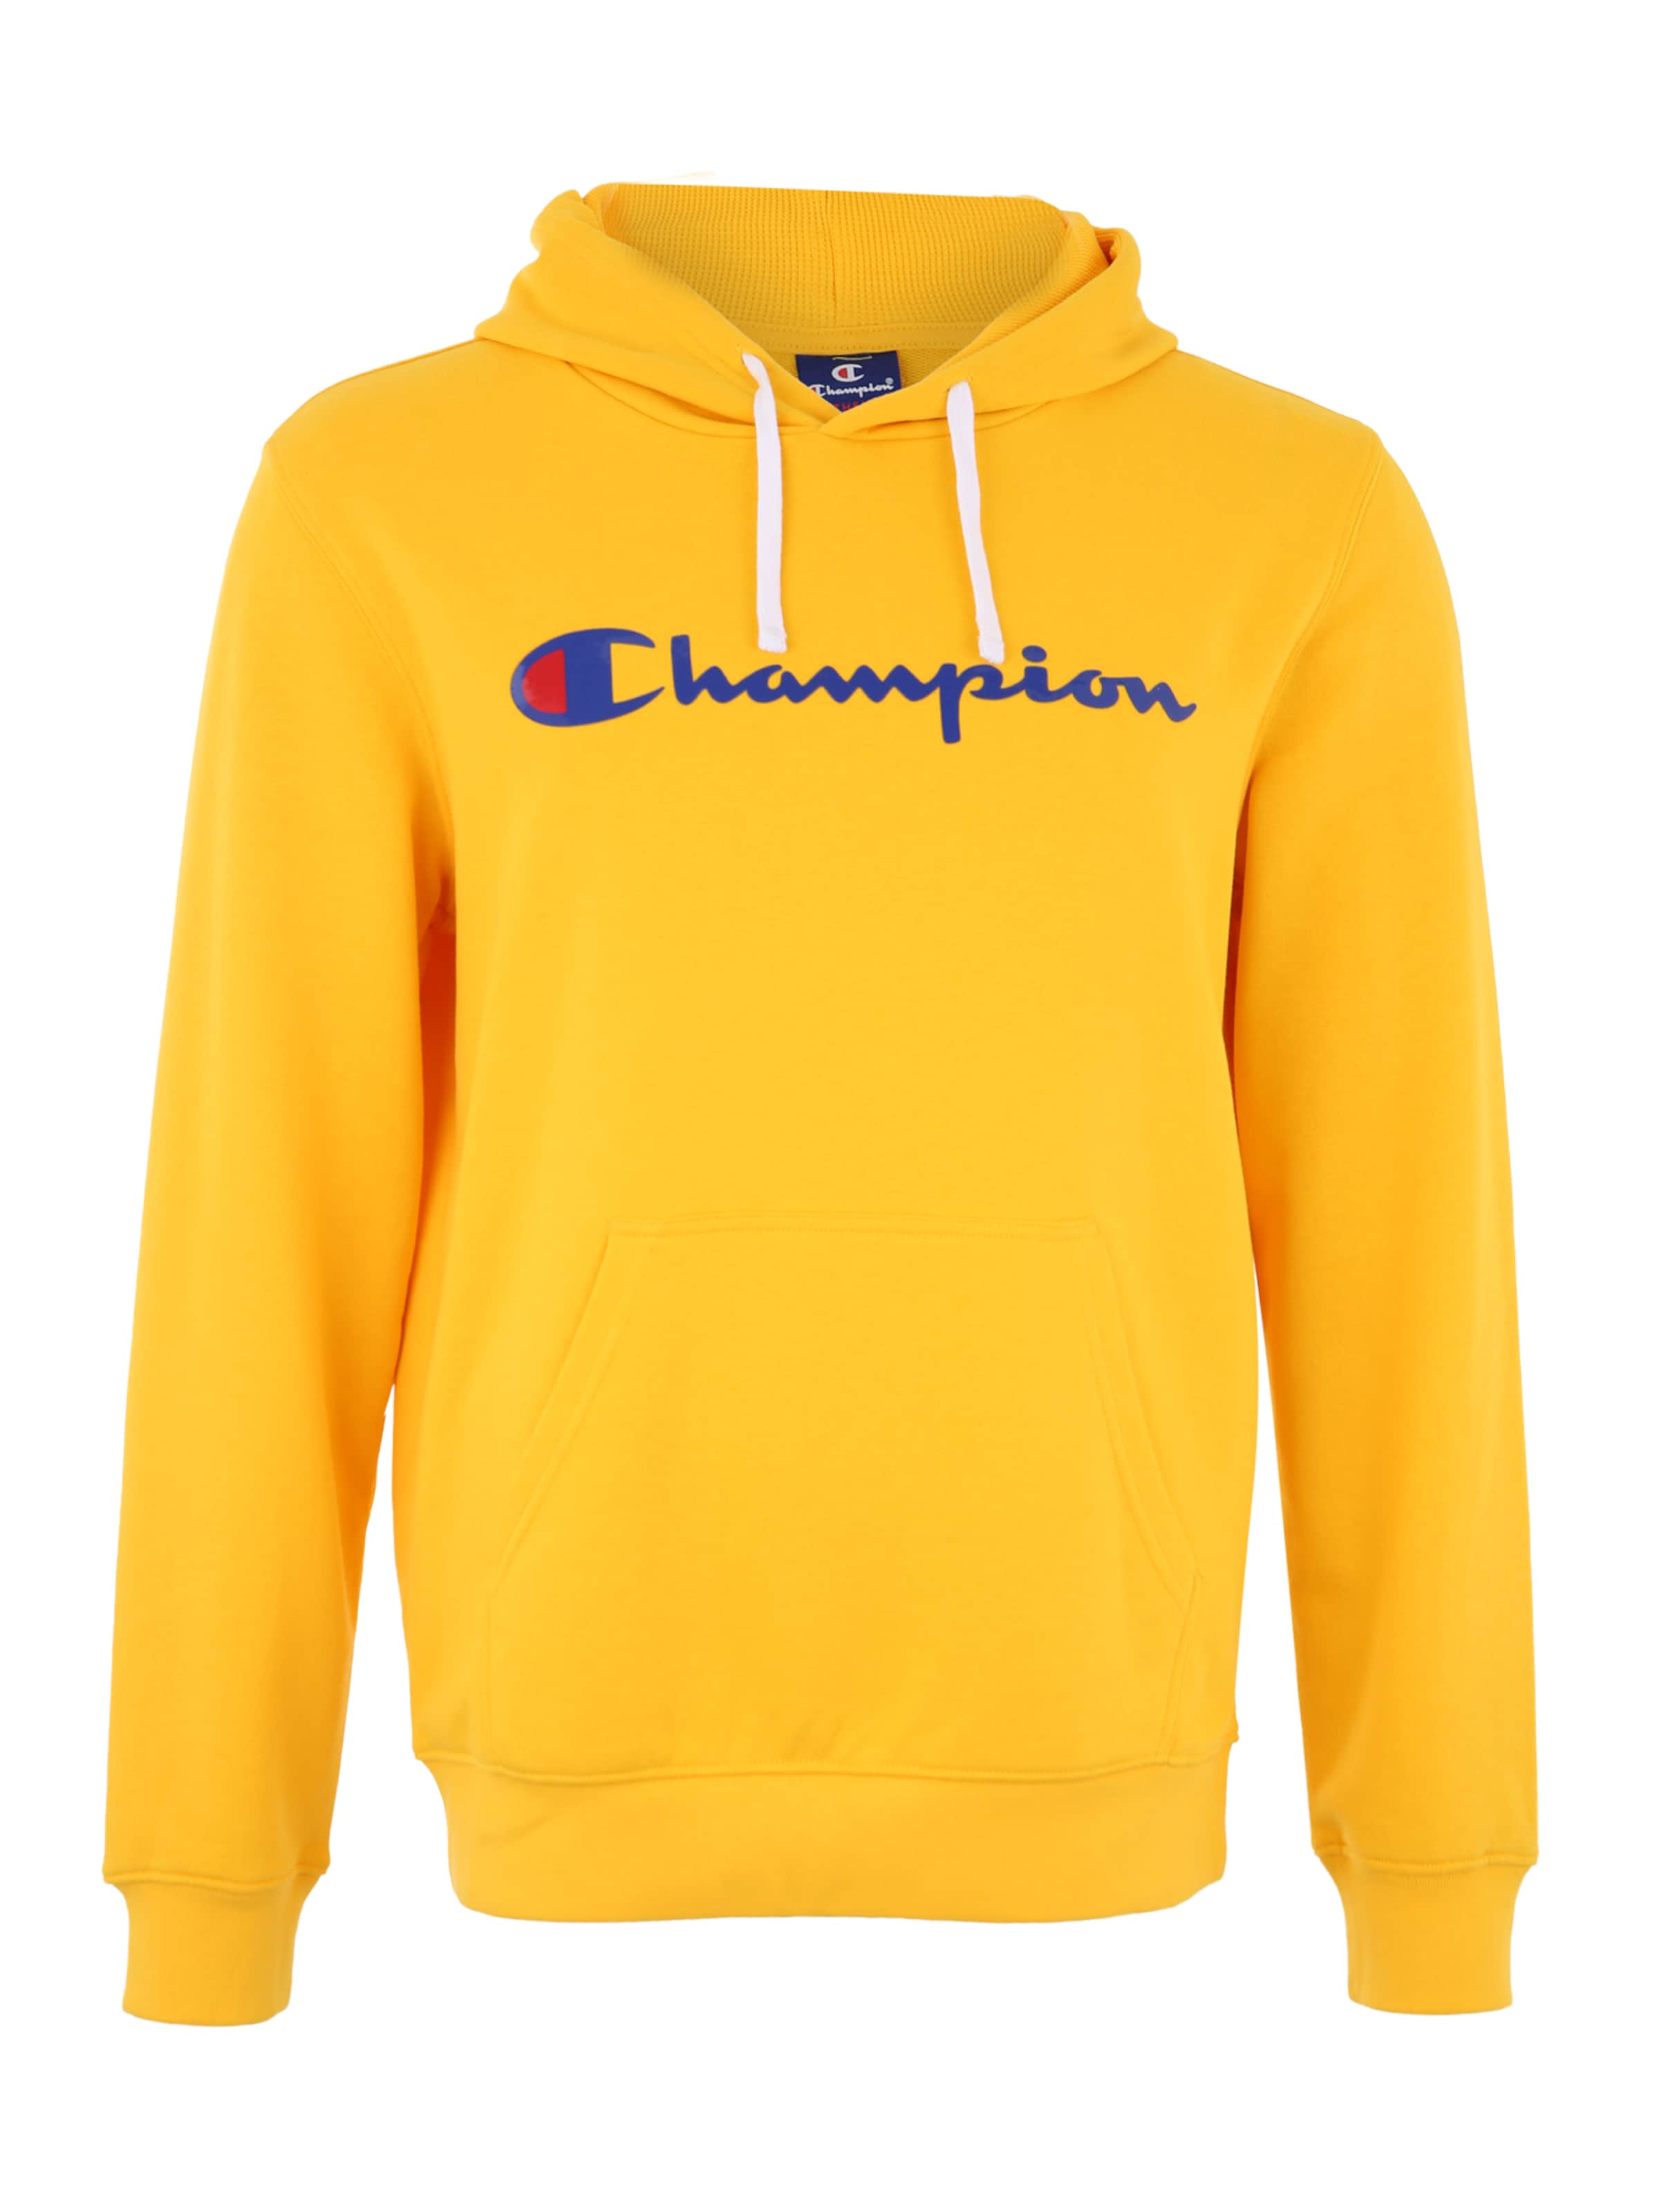 Champion athletic wear coupons